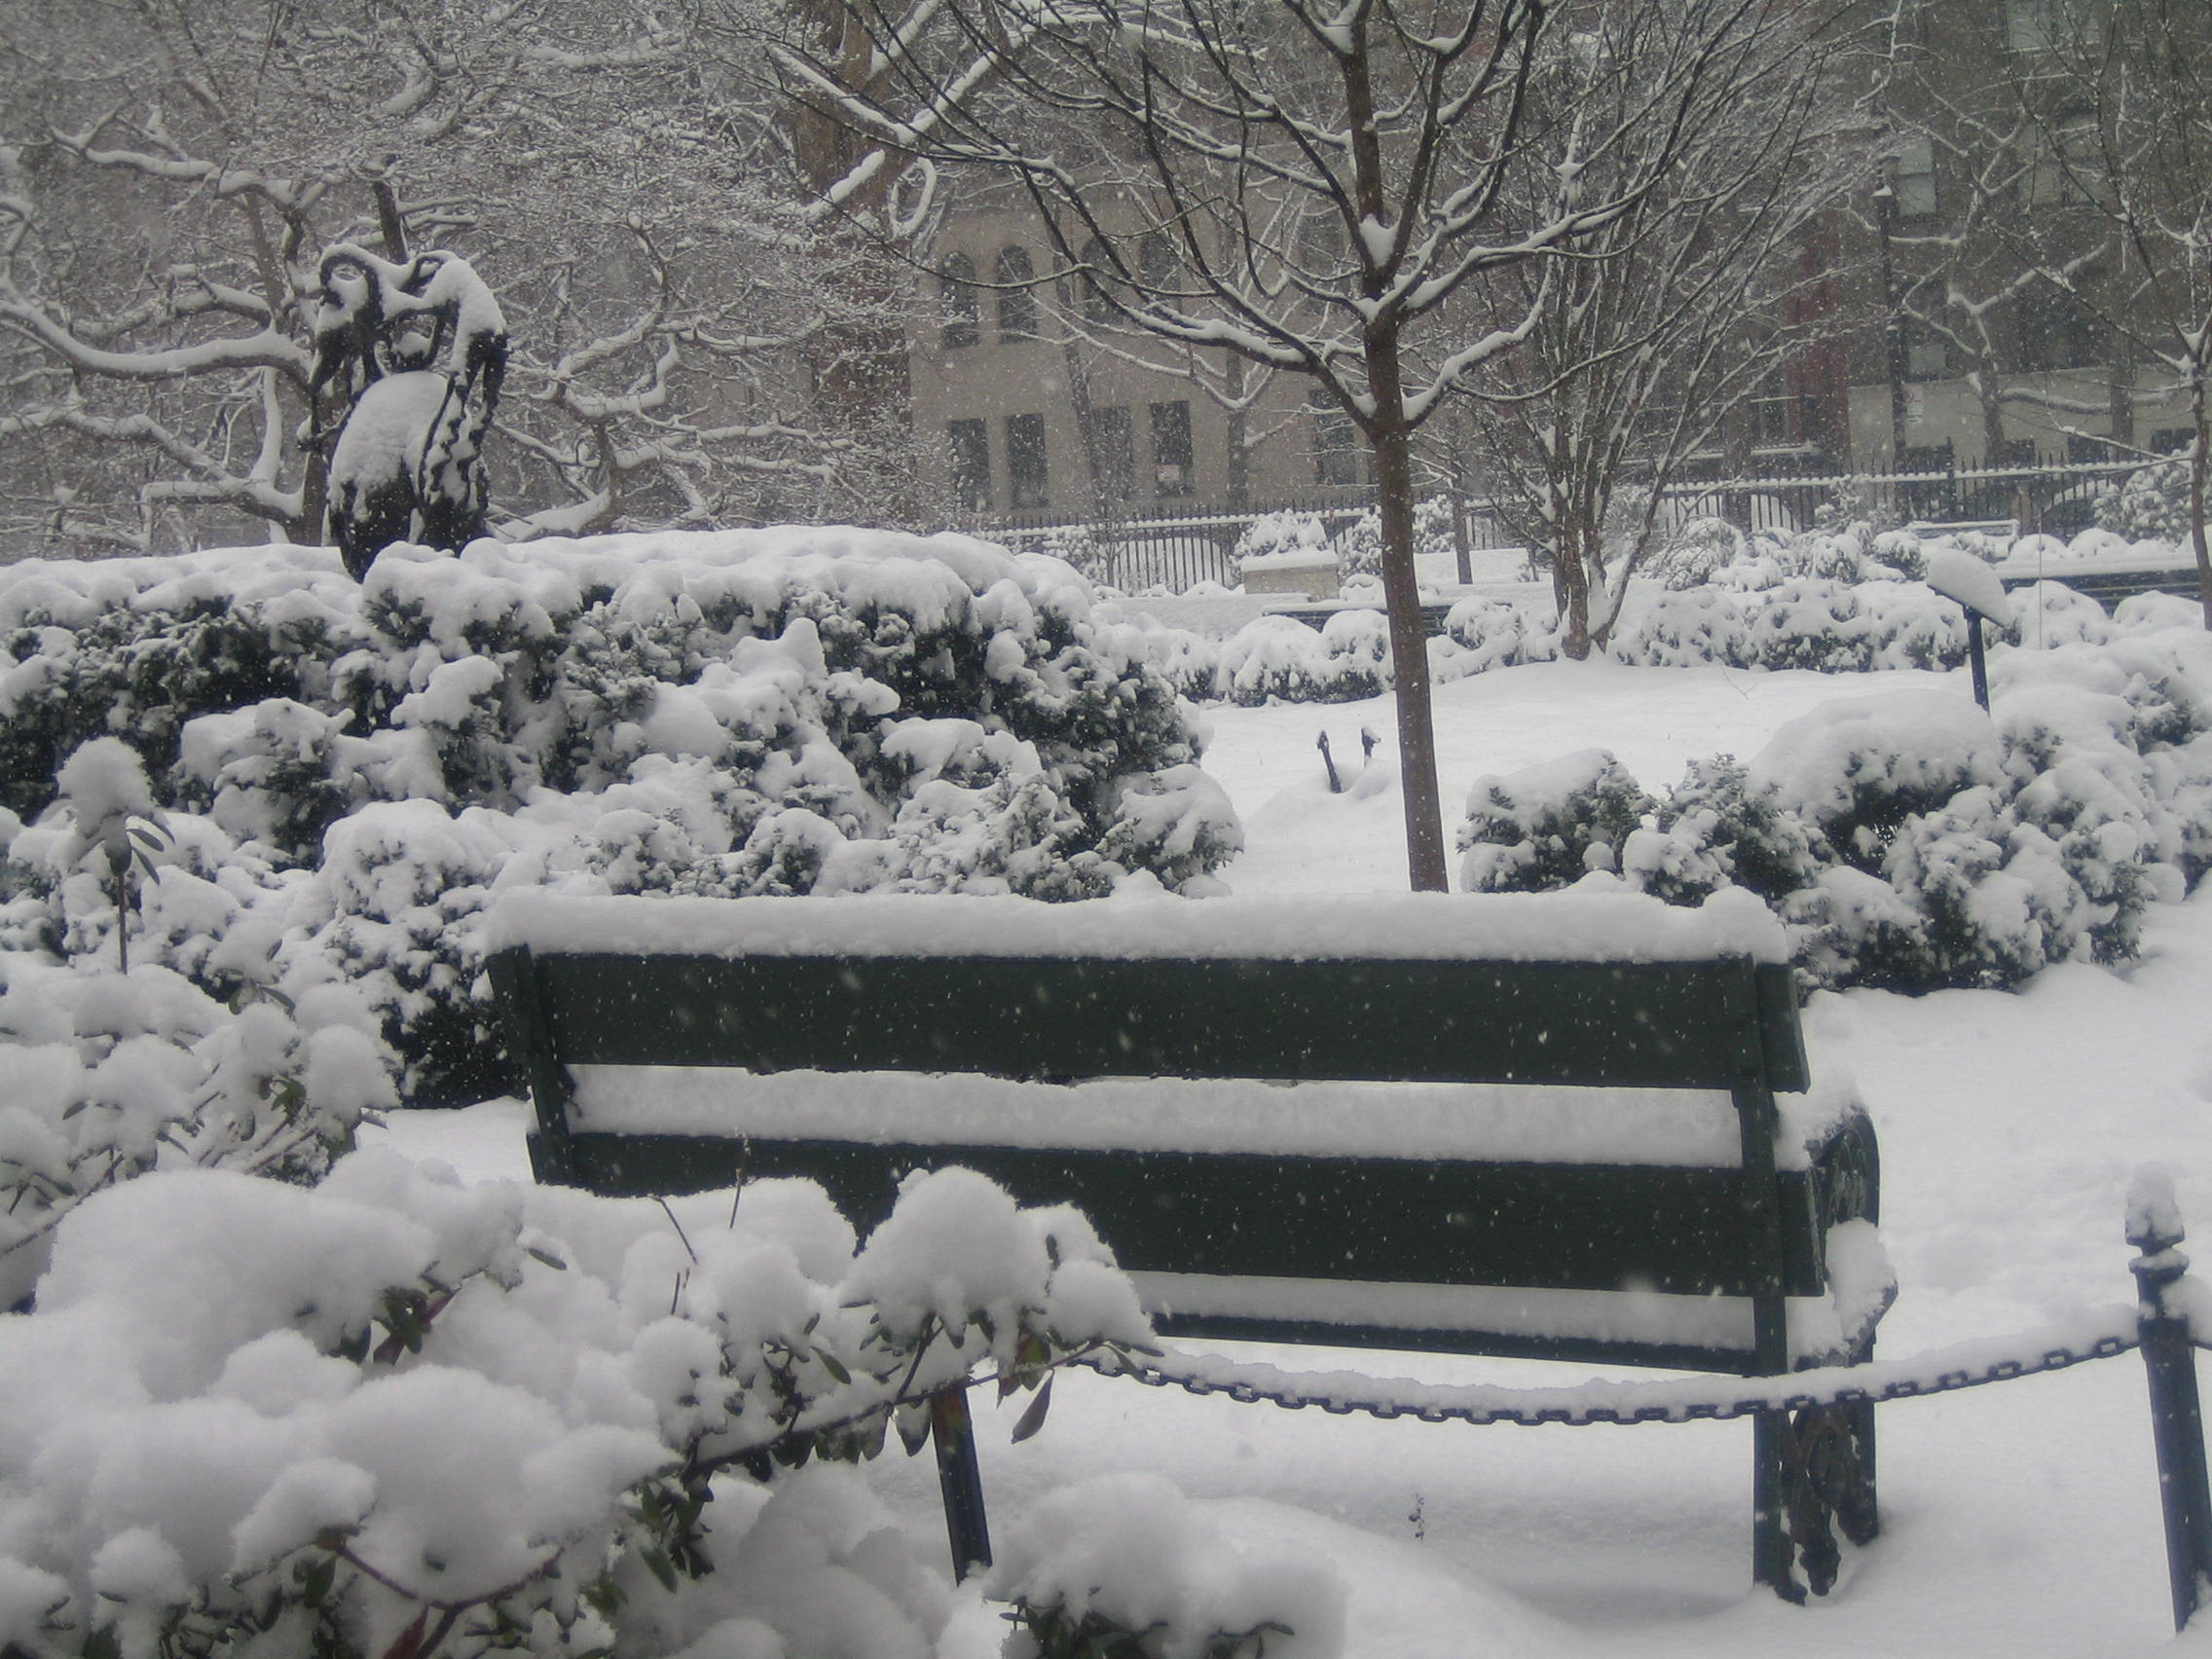 Gramercy Park in the winter, Bench, Cold, Covered, Garden, HQ Photo